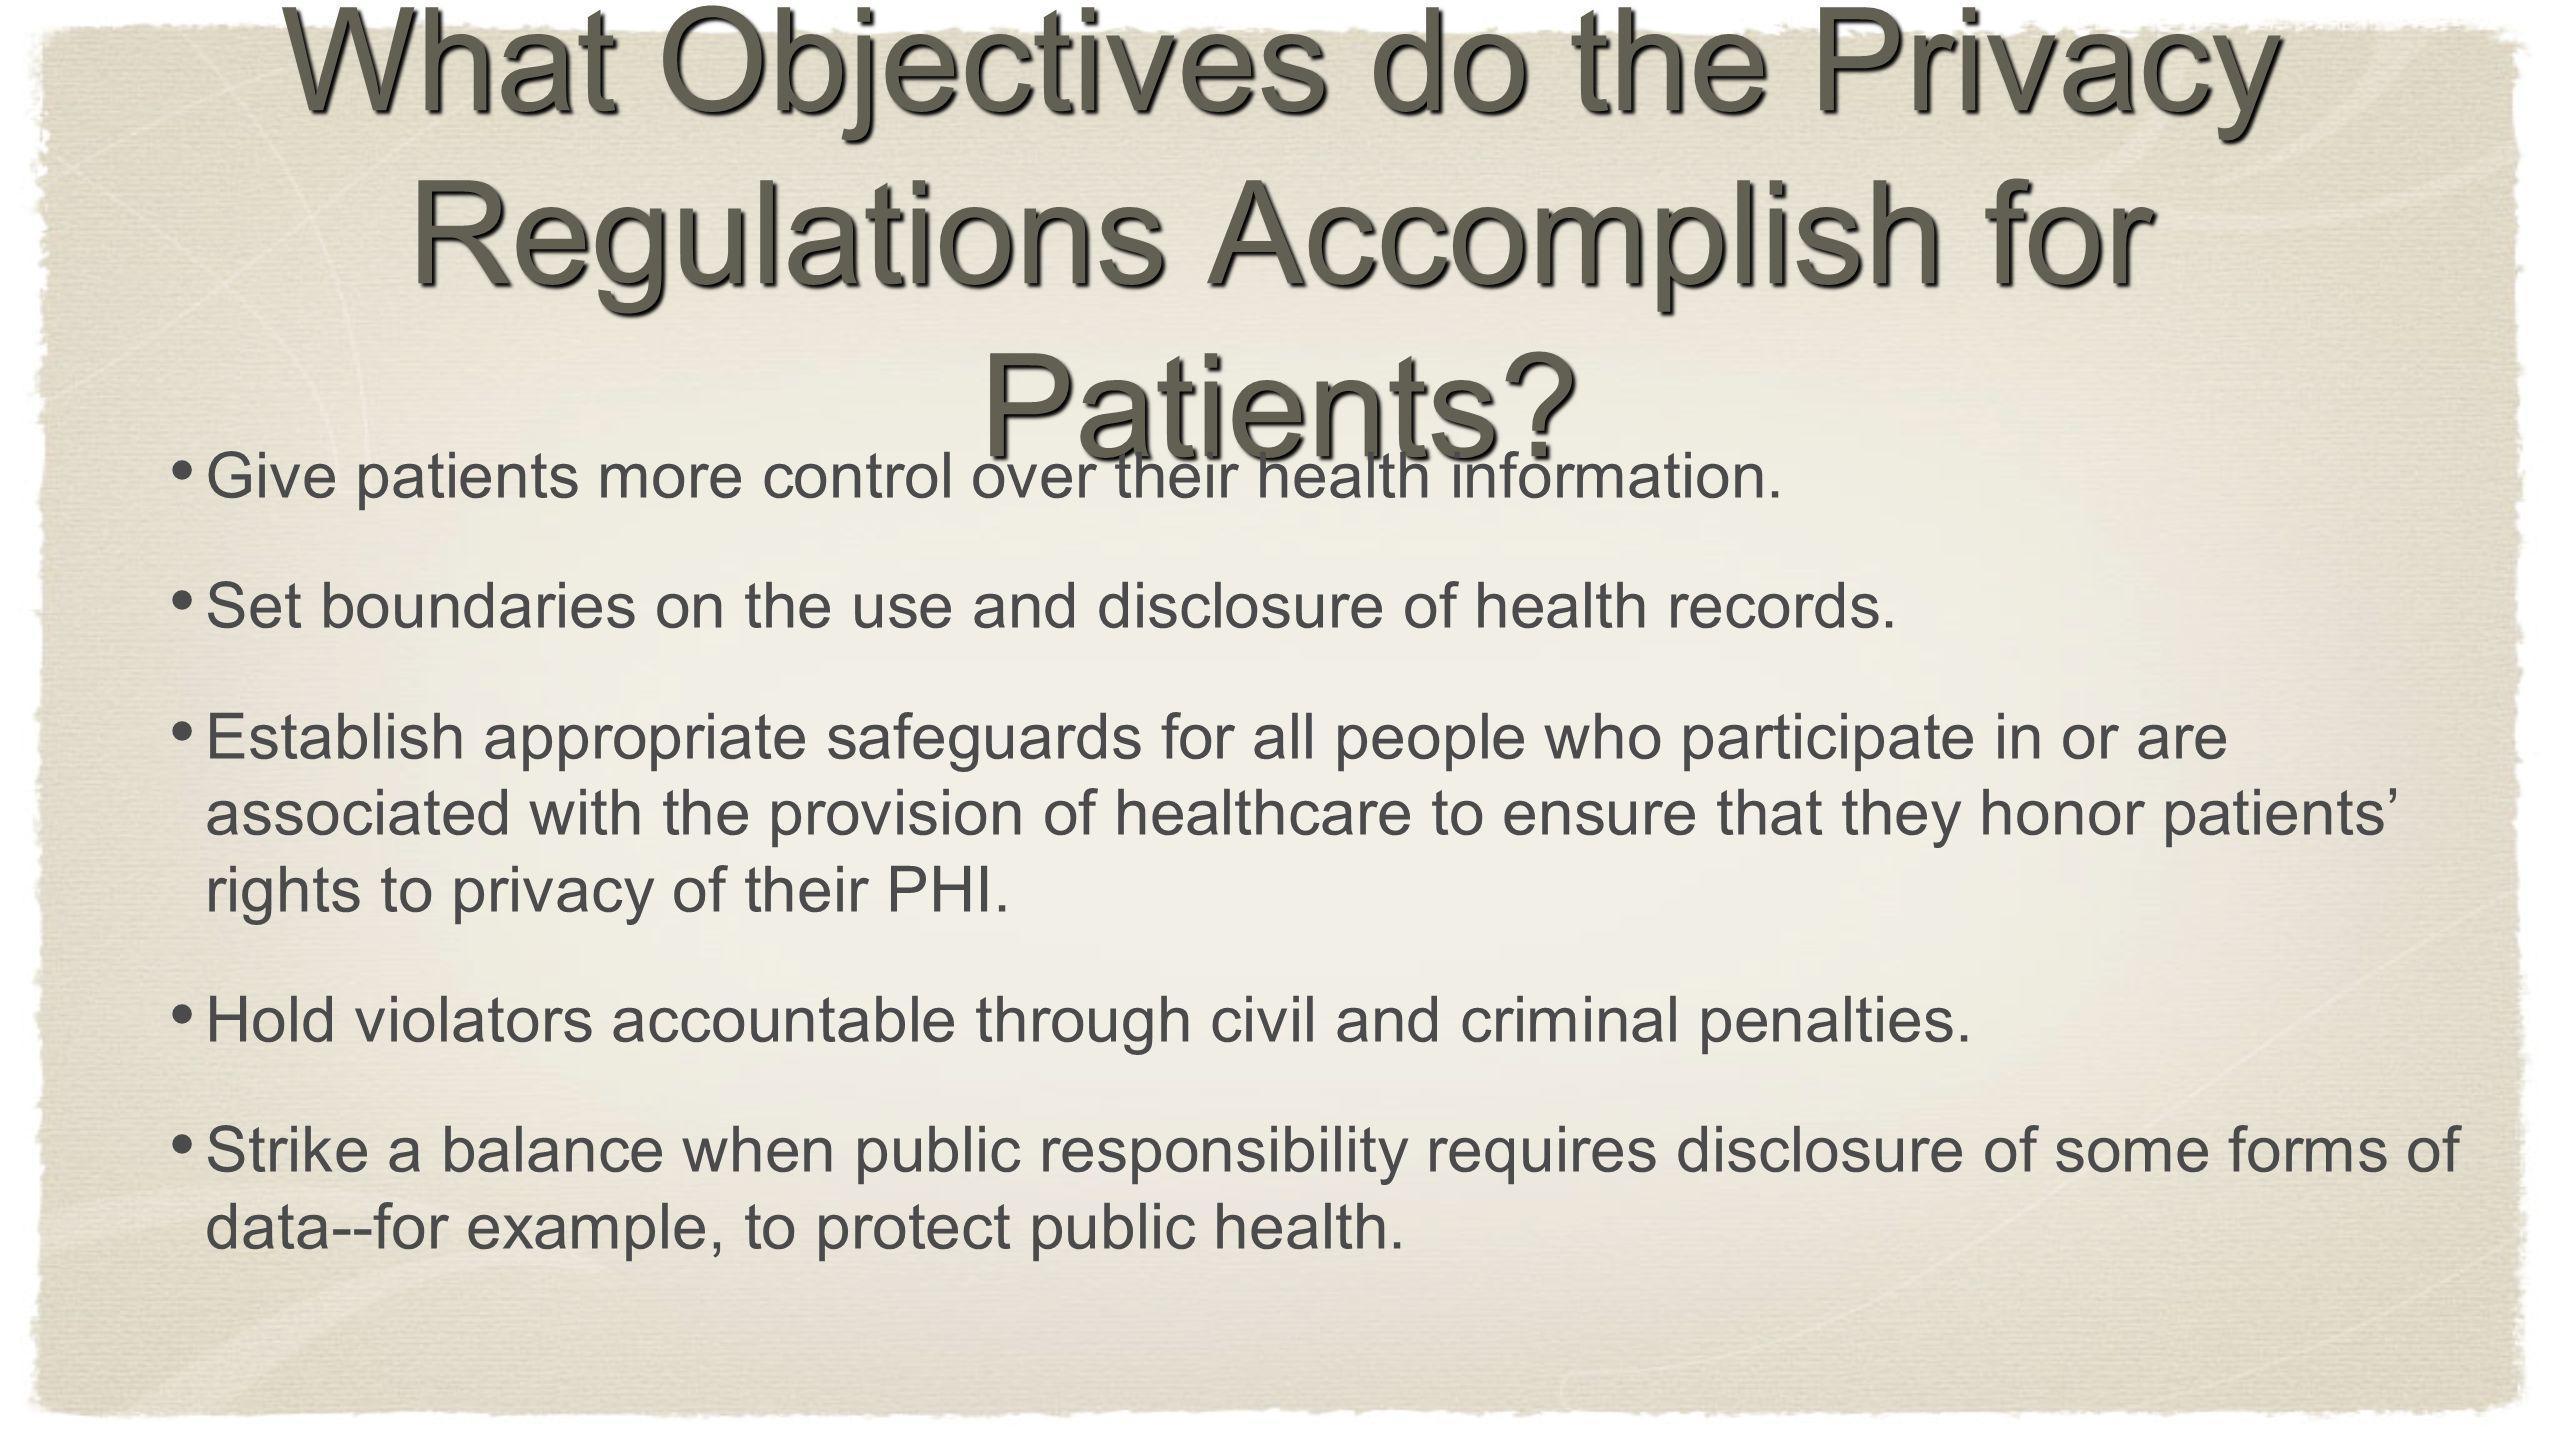 What Objectives do the Privacy Regulations Accomplish for Patients